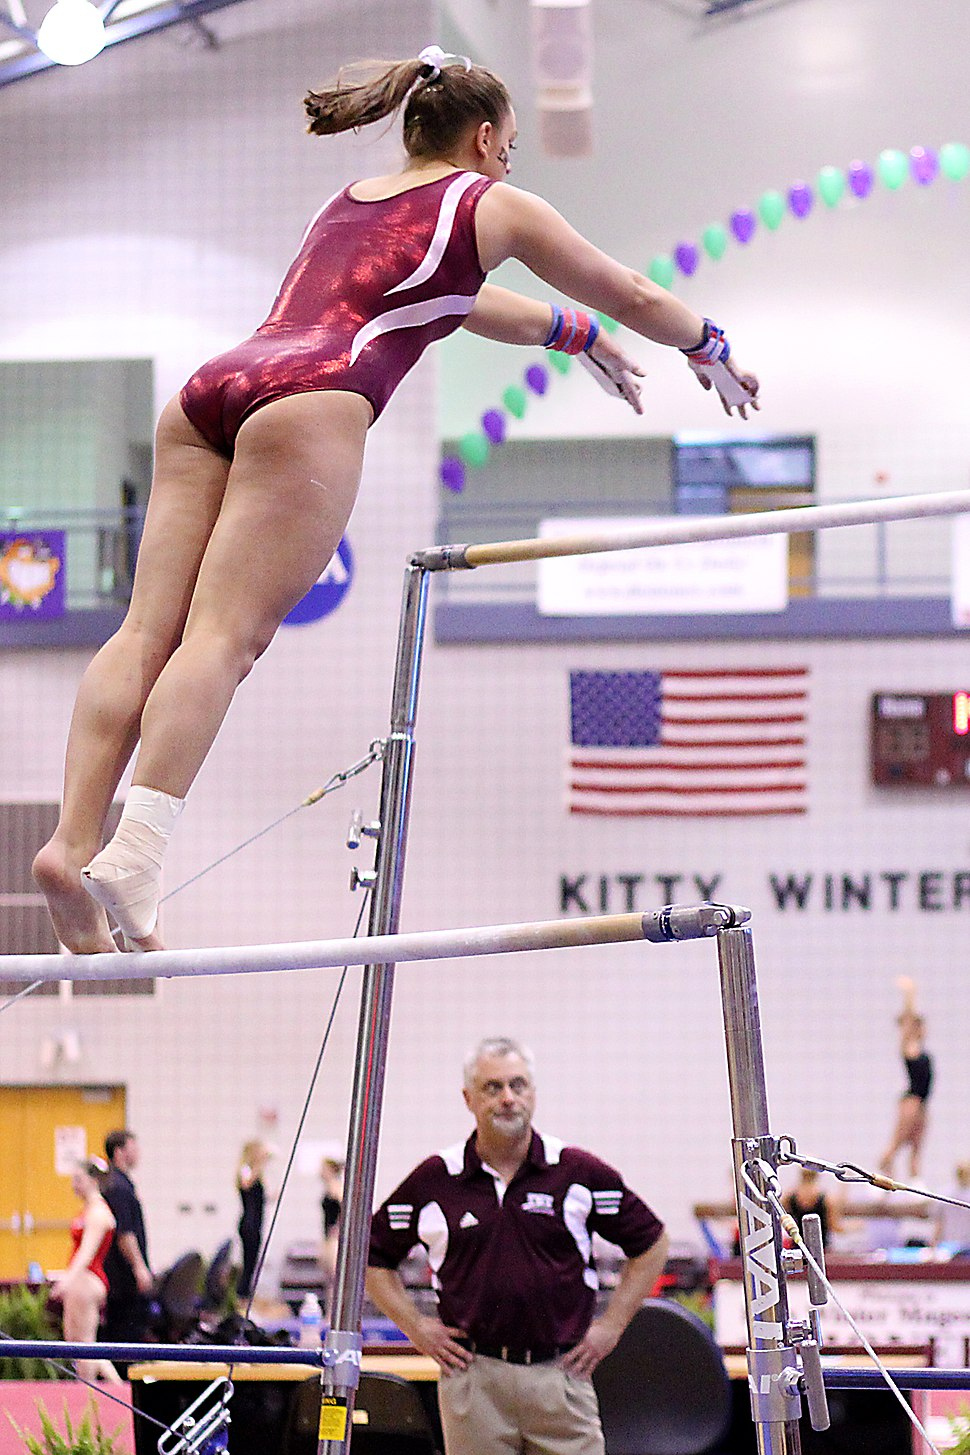 TWU Gymnastics (Bars) Amy Winczura (5694030475)